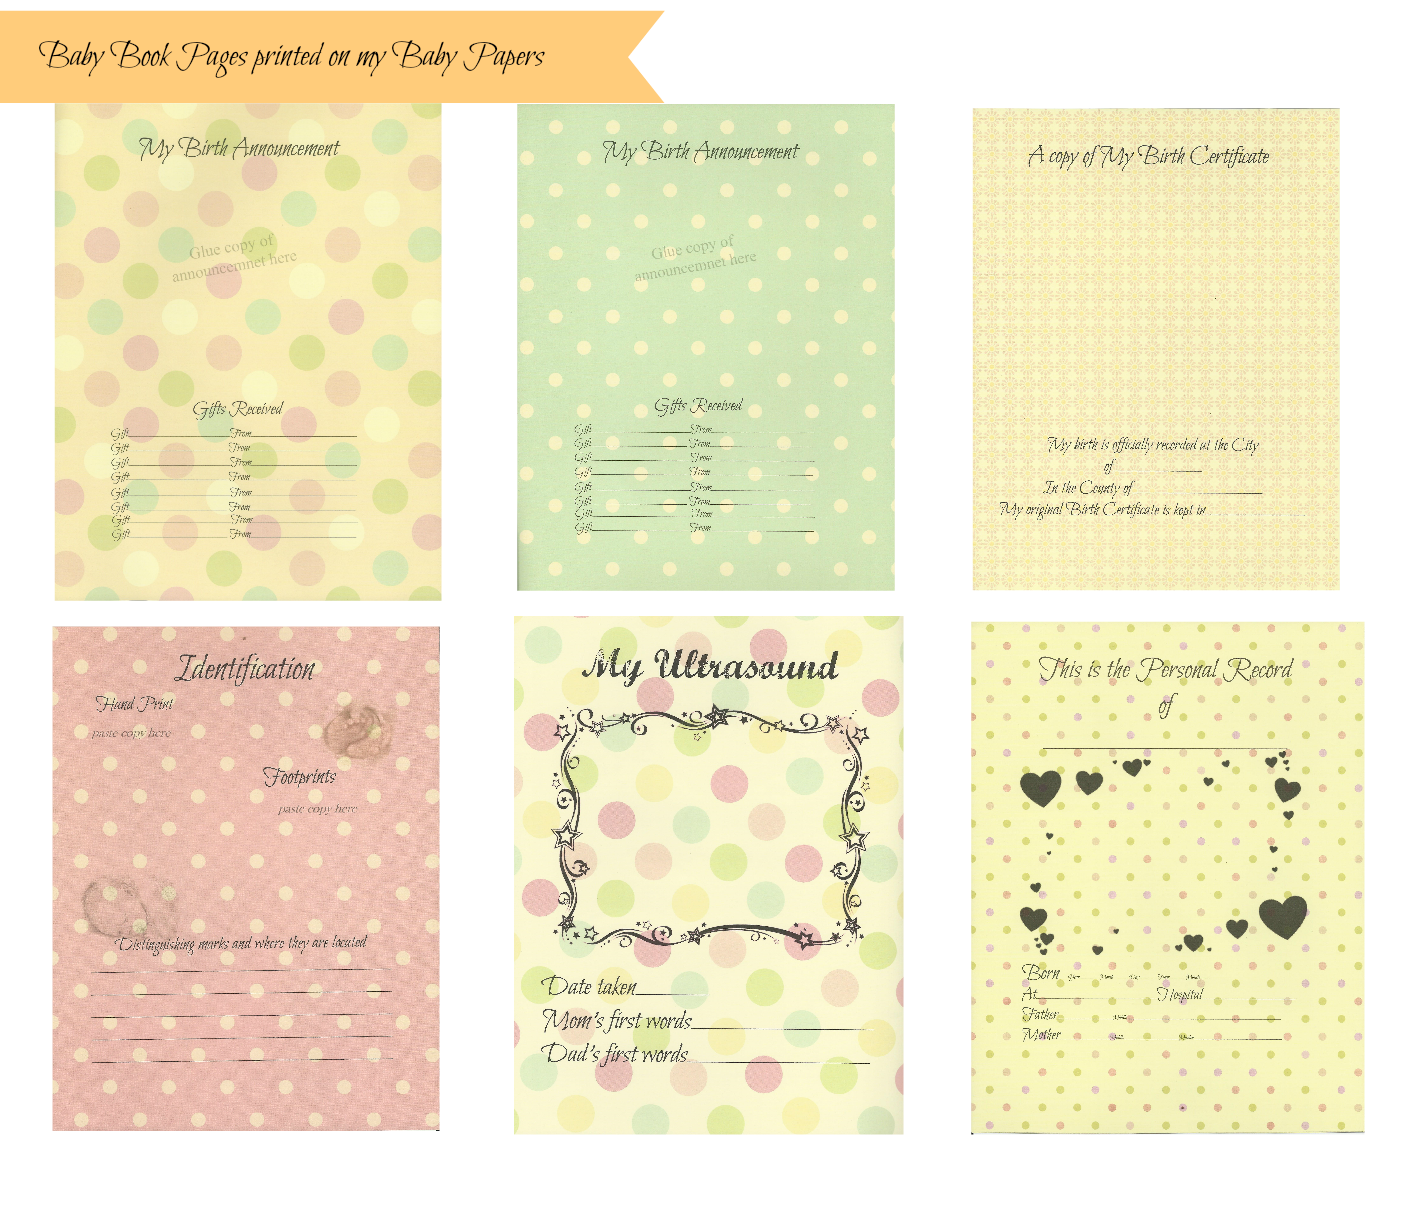 Free download baby book pages printed on my baby papers do it free download baby book pages printed on my baby papers baby memory booksbaby booksbaby book pagesdiy solutioingenieria Image collections